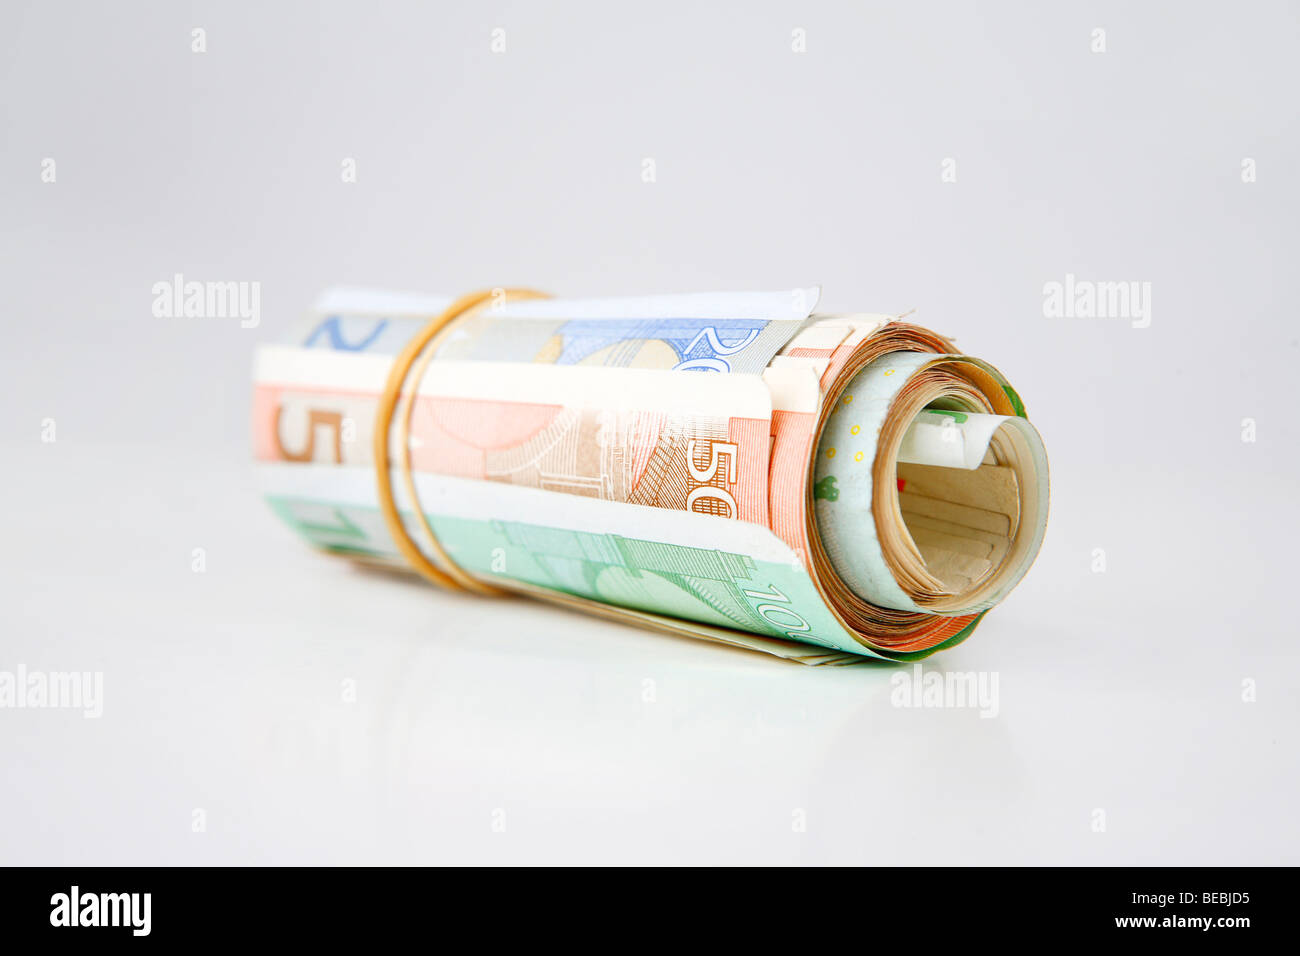 Wad of banknotes - Stock Image